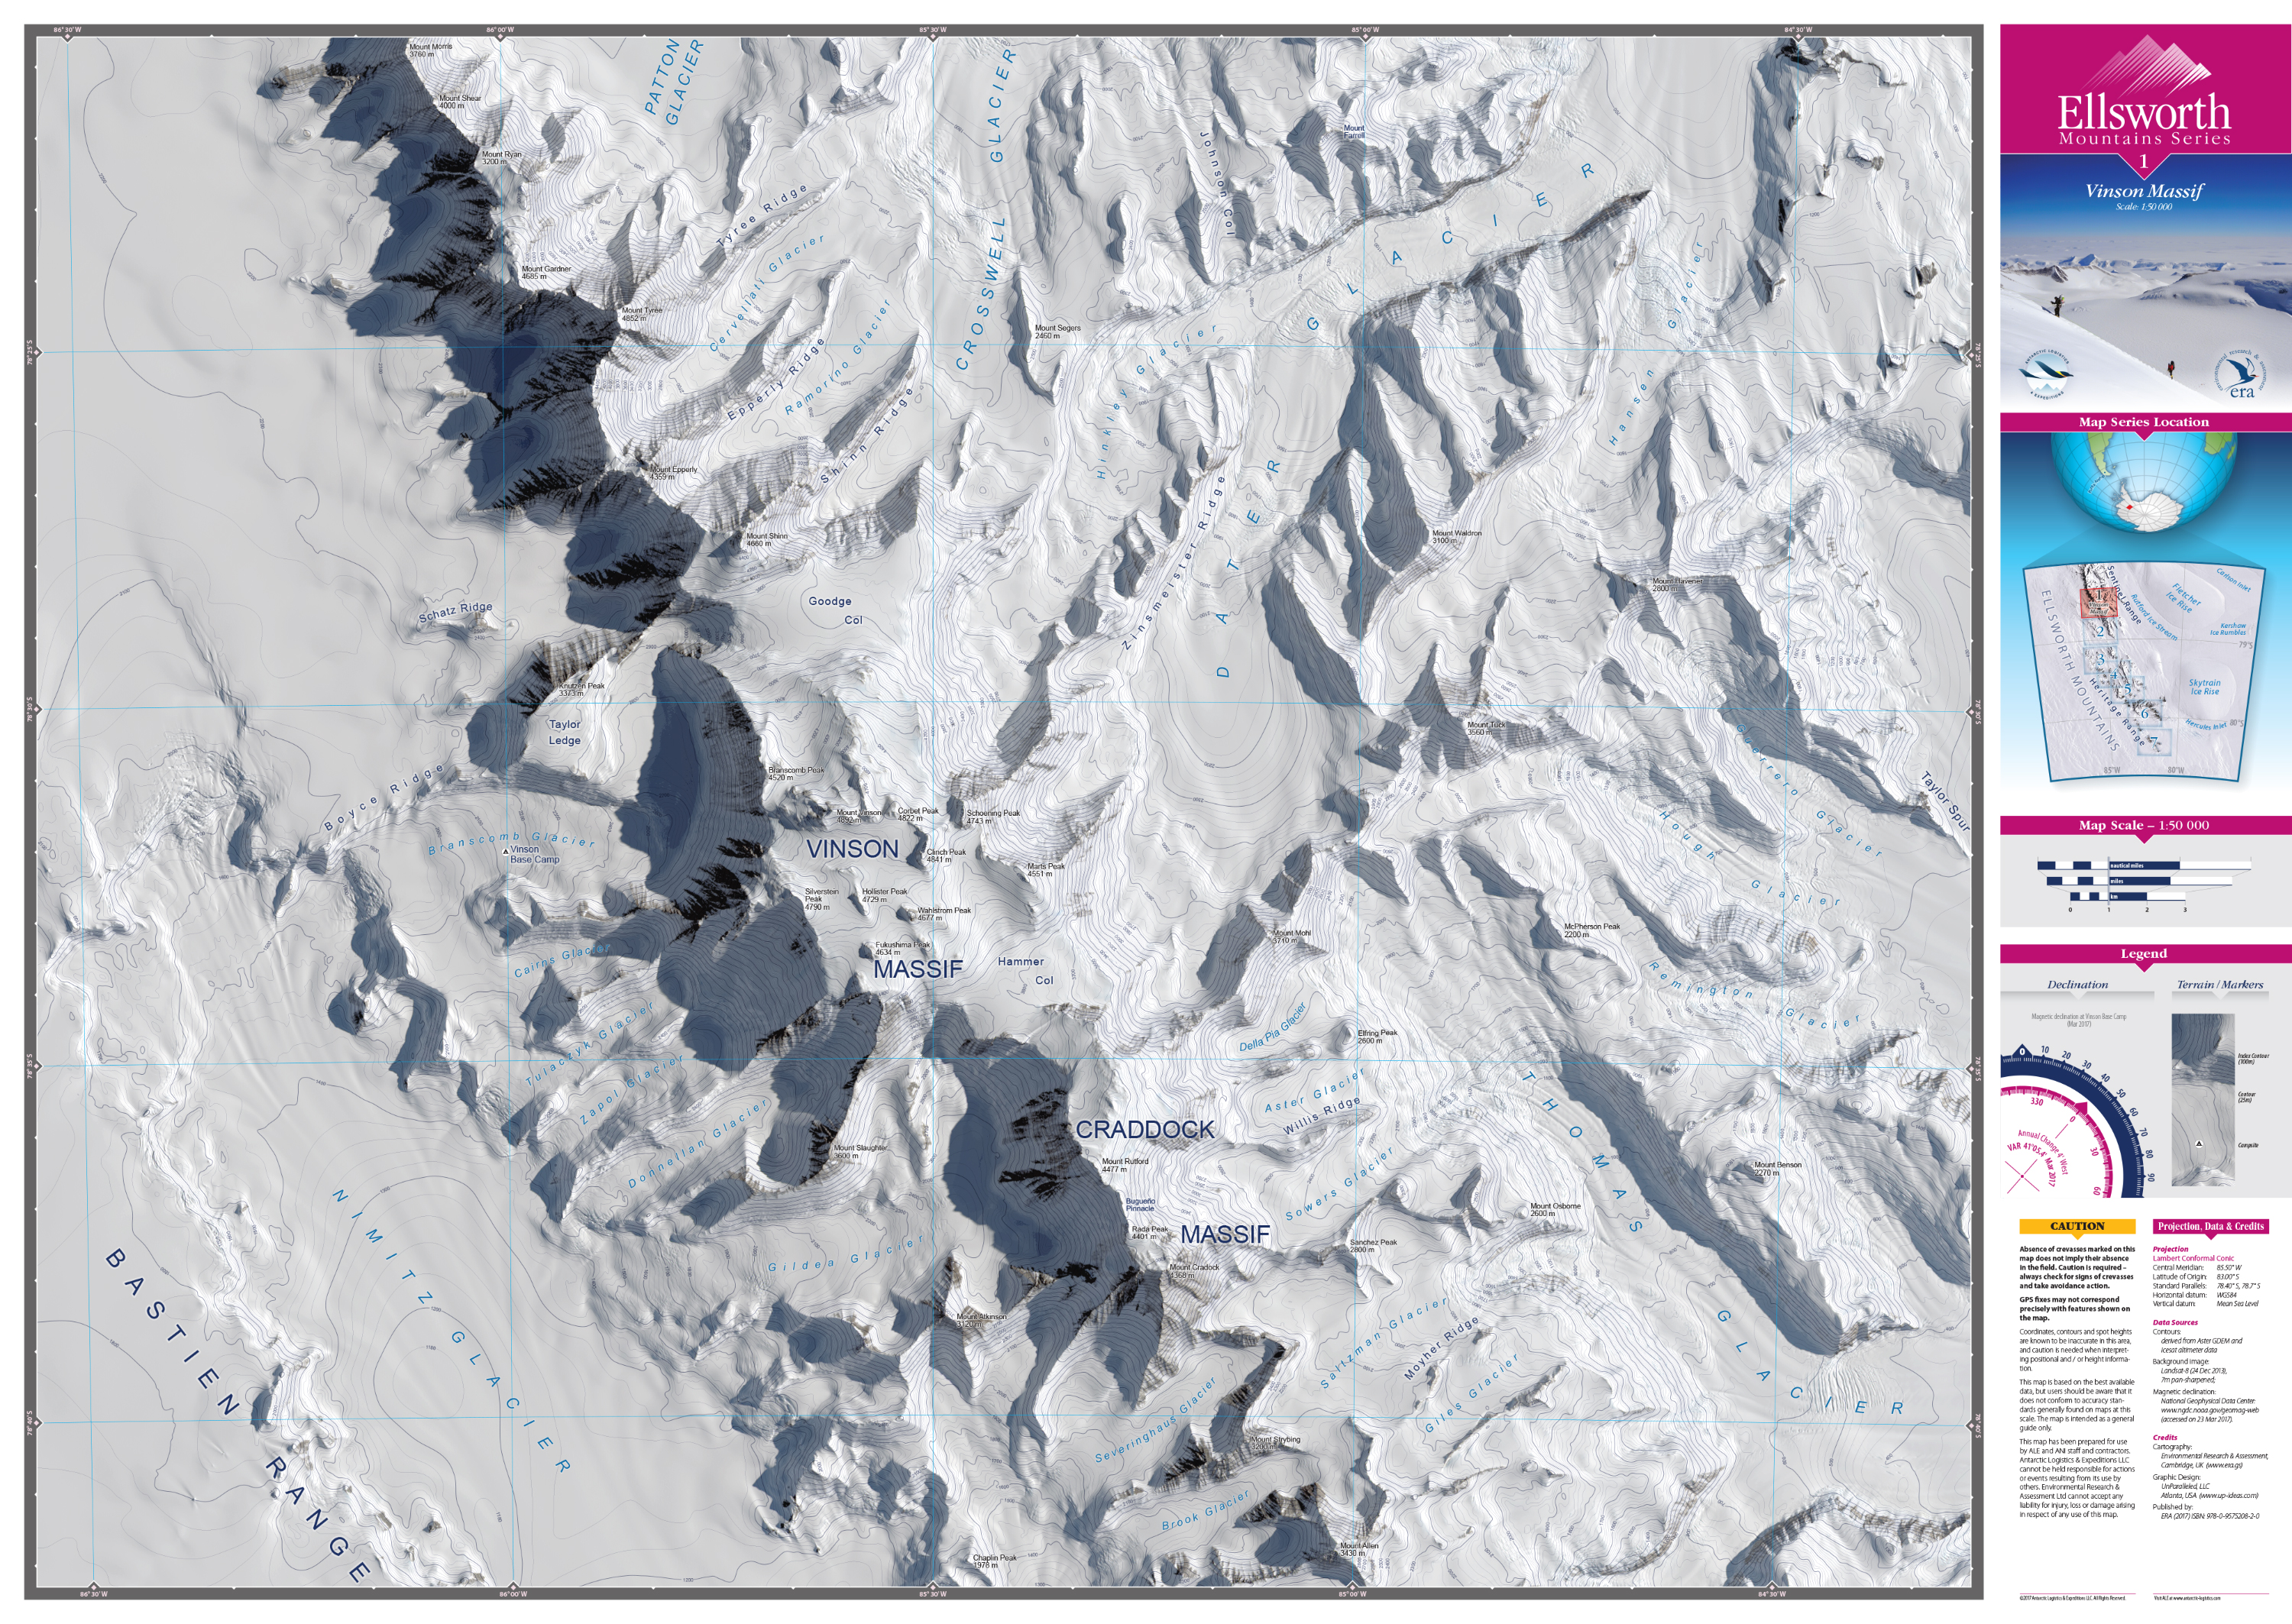 MAP DESIGN - Antarctic Logistics & Expeditions | Ellsworth Mountain Map Series | Vinson Massif 1:50,000 - ©UnParalleled, LLC dba UP-Ideas / Roger Sawhill / Mark Braught - Atlanta, Georgia | Lawrenceville, Georgia | Commerce, Georgia